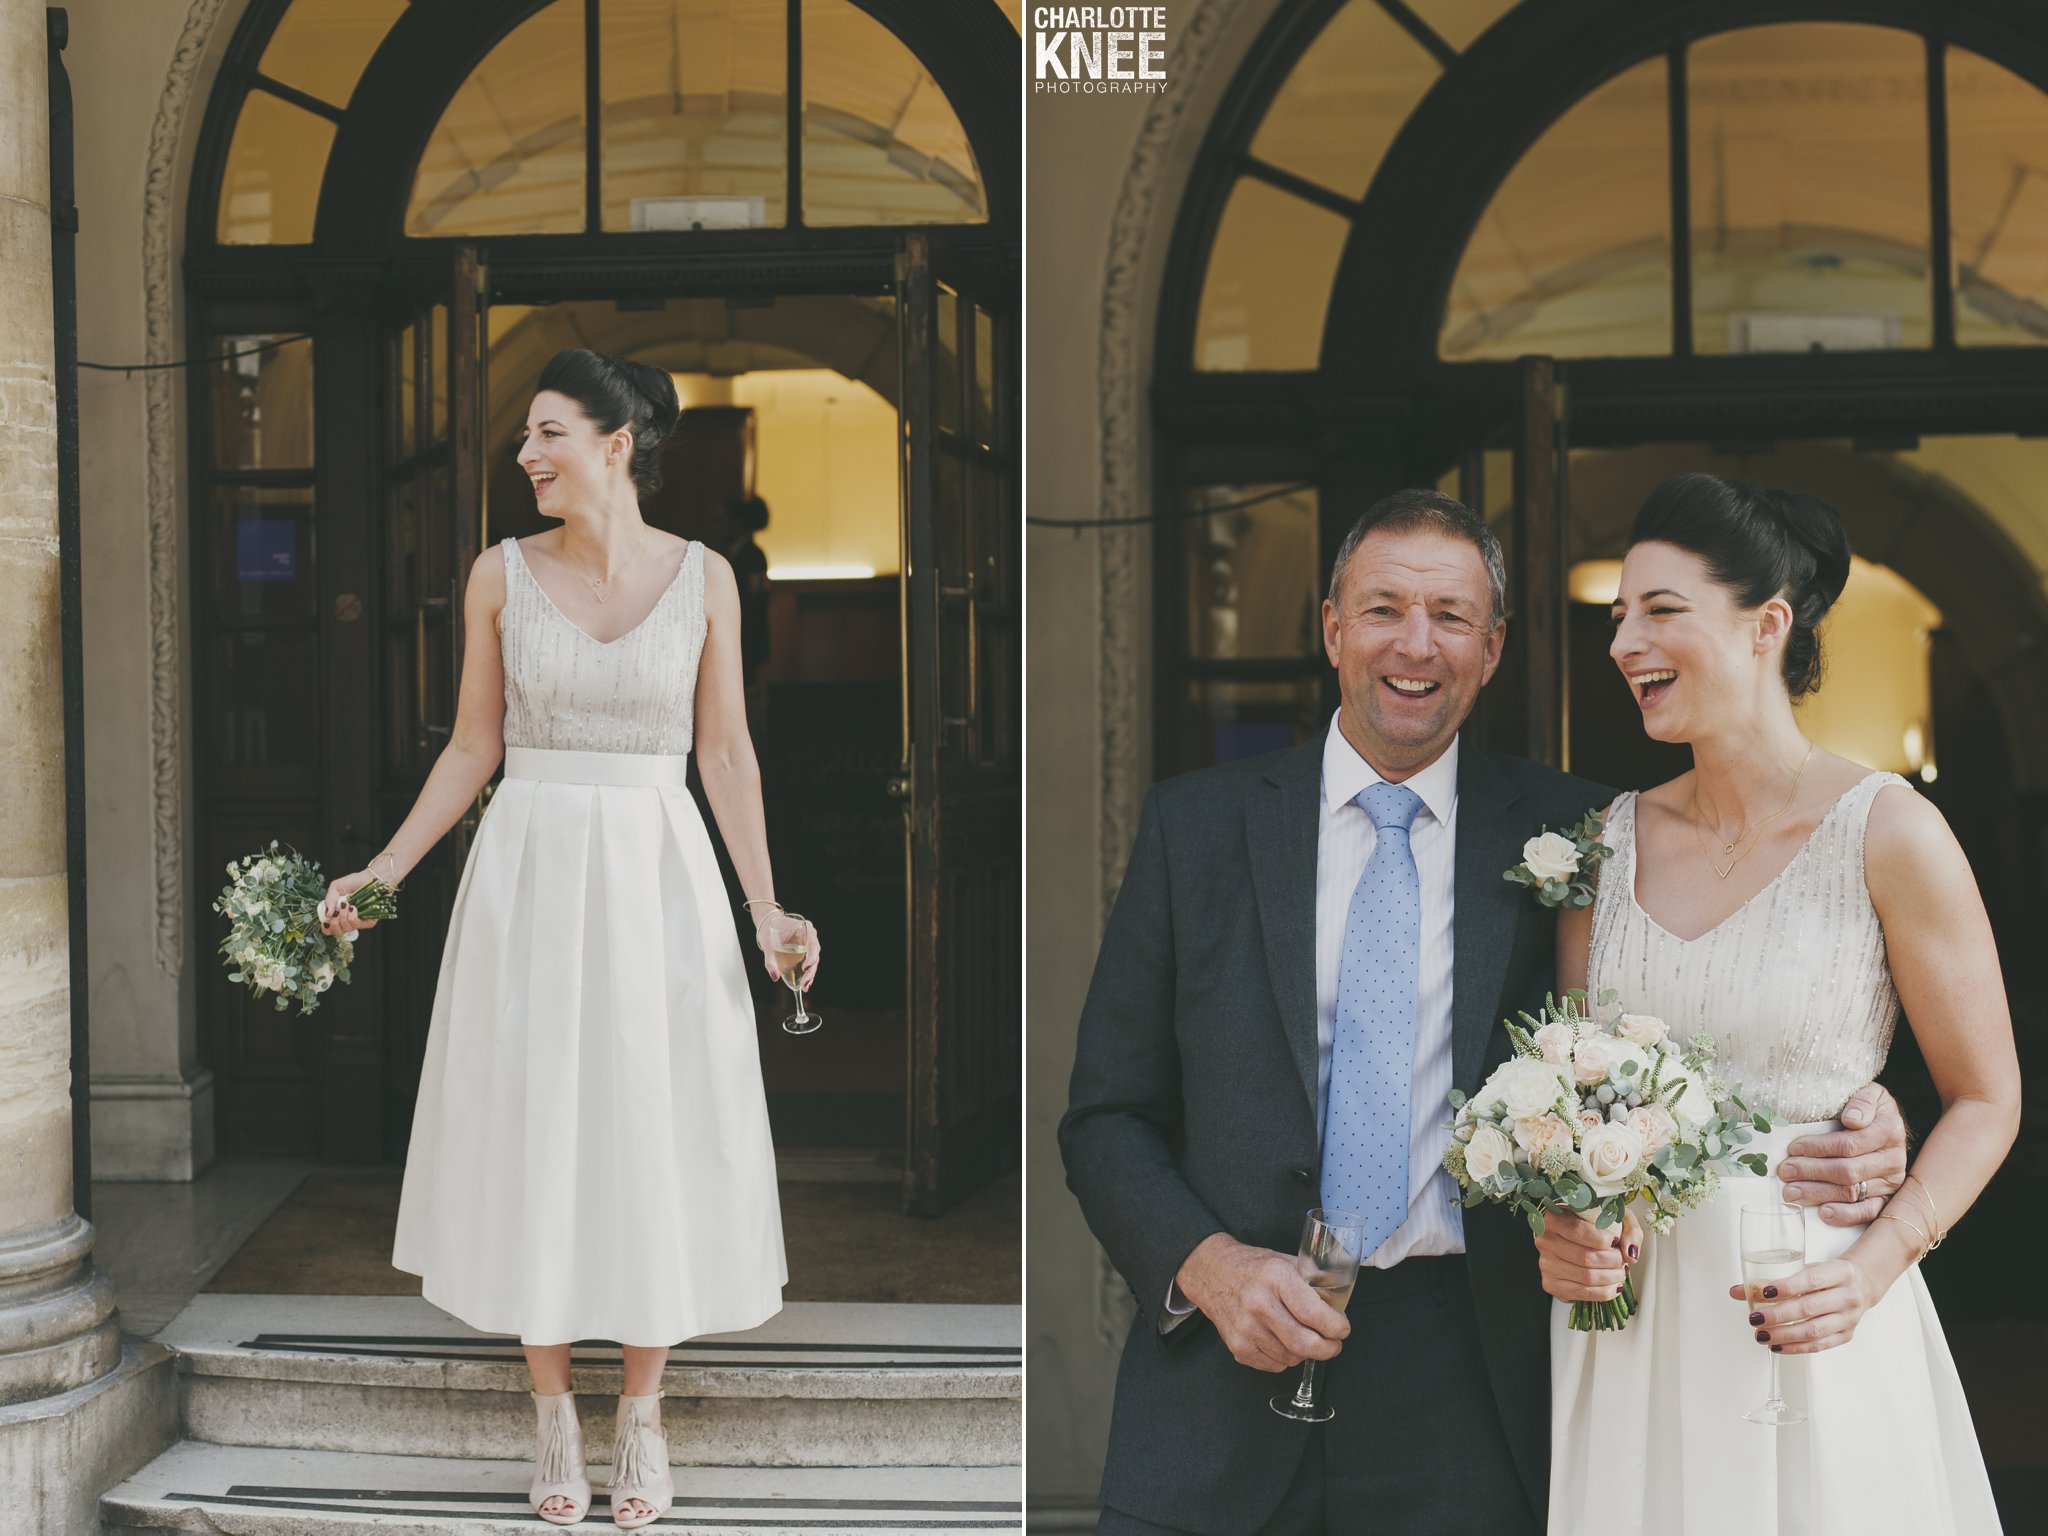 London Wedding Finsbury Town Hall Copyright Charlotte Knee Photography_0057.jpg